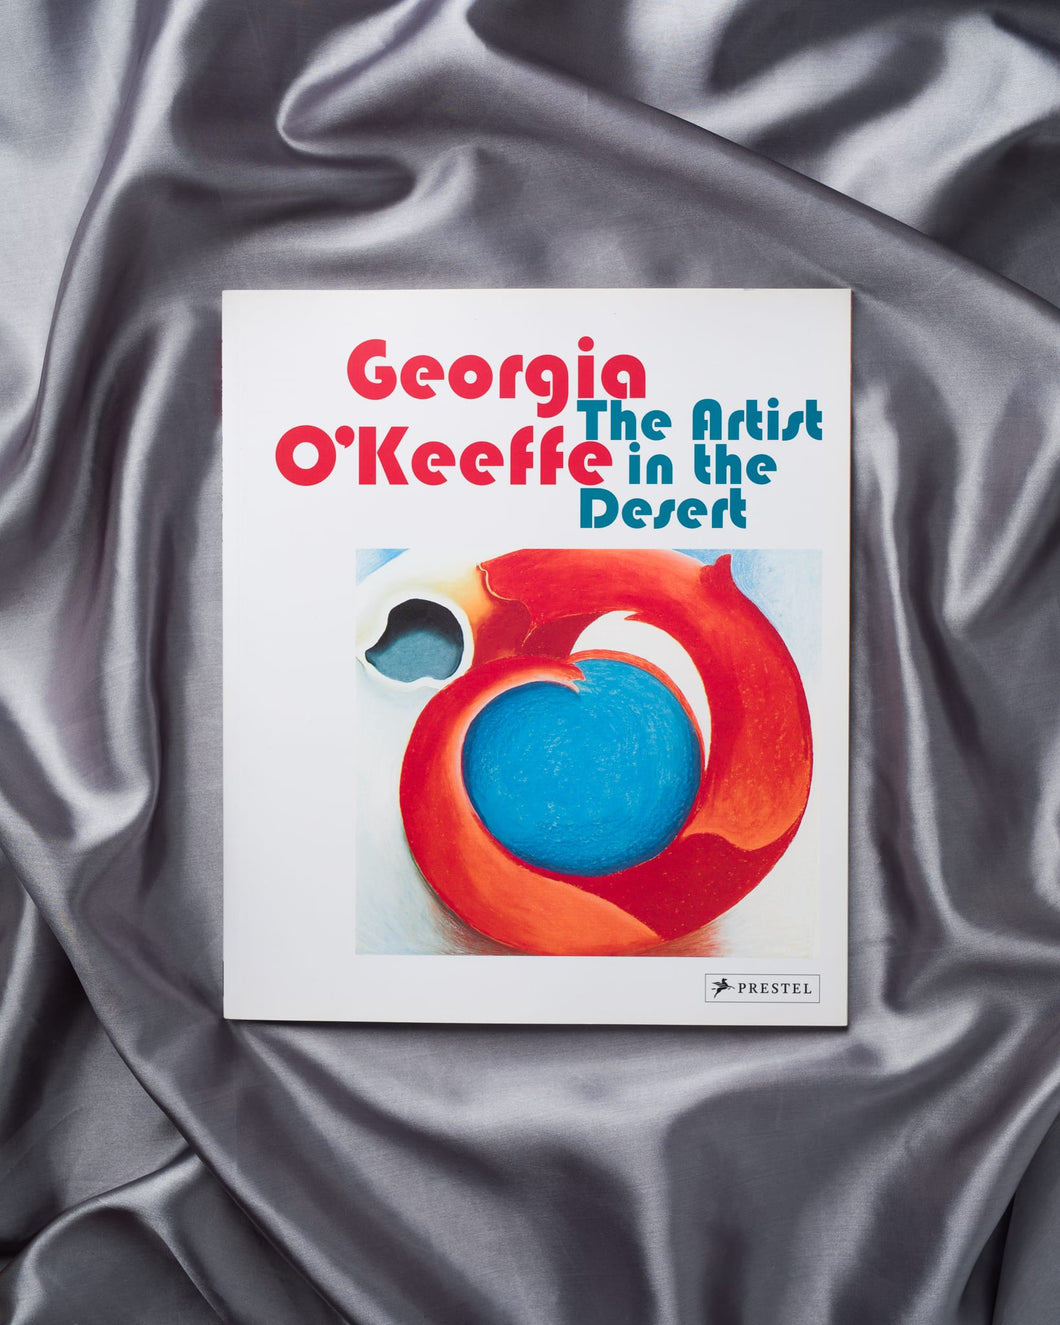 Georgia O'Keeffe: The Artist in the Desert